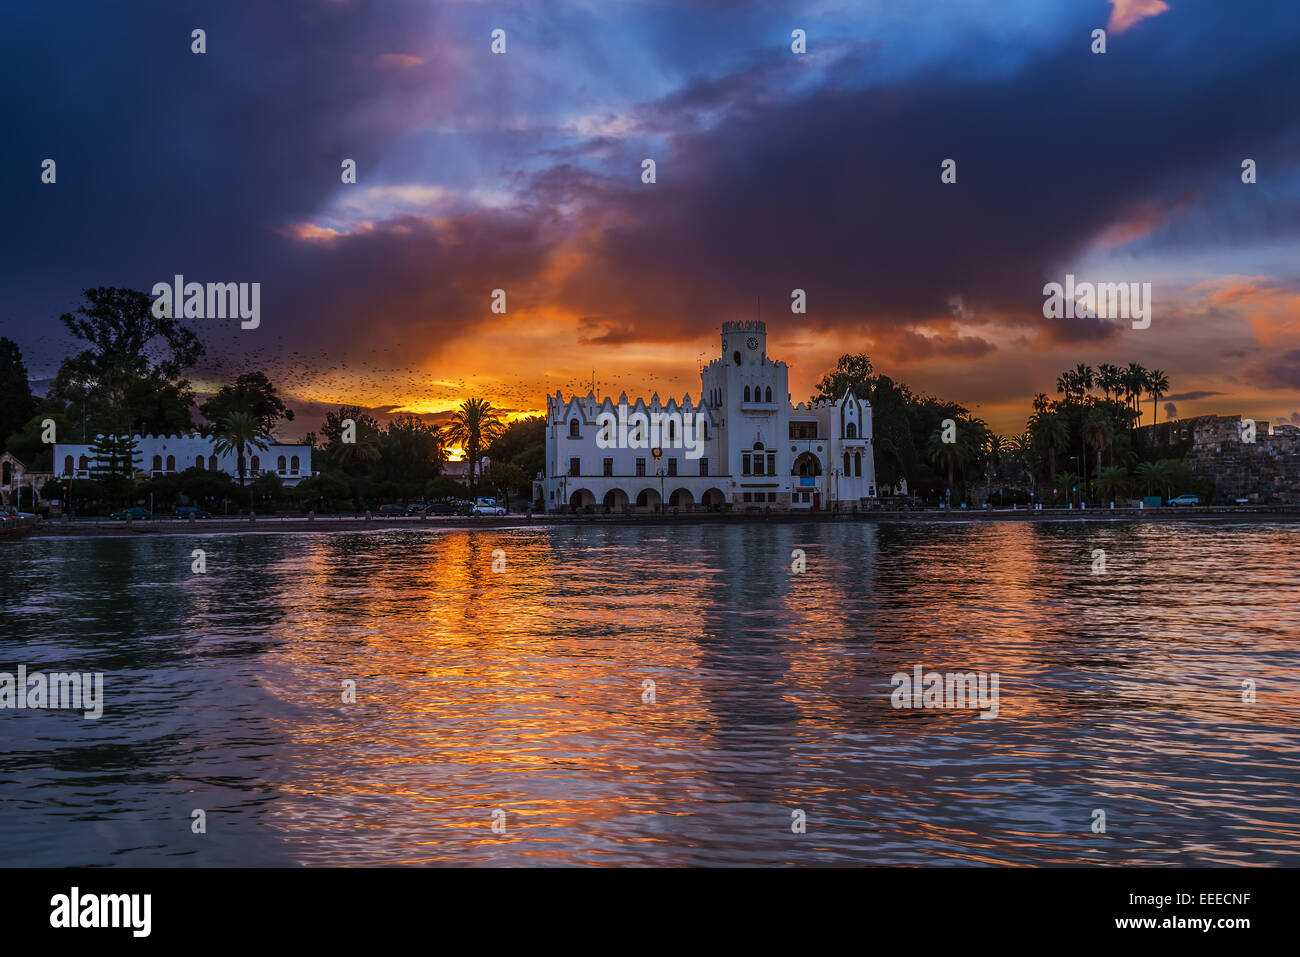 Building with Italian architecture in Kos islang Greece - Stock Image